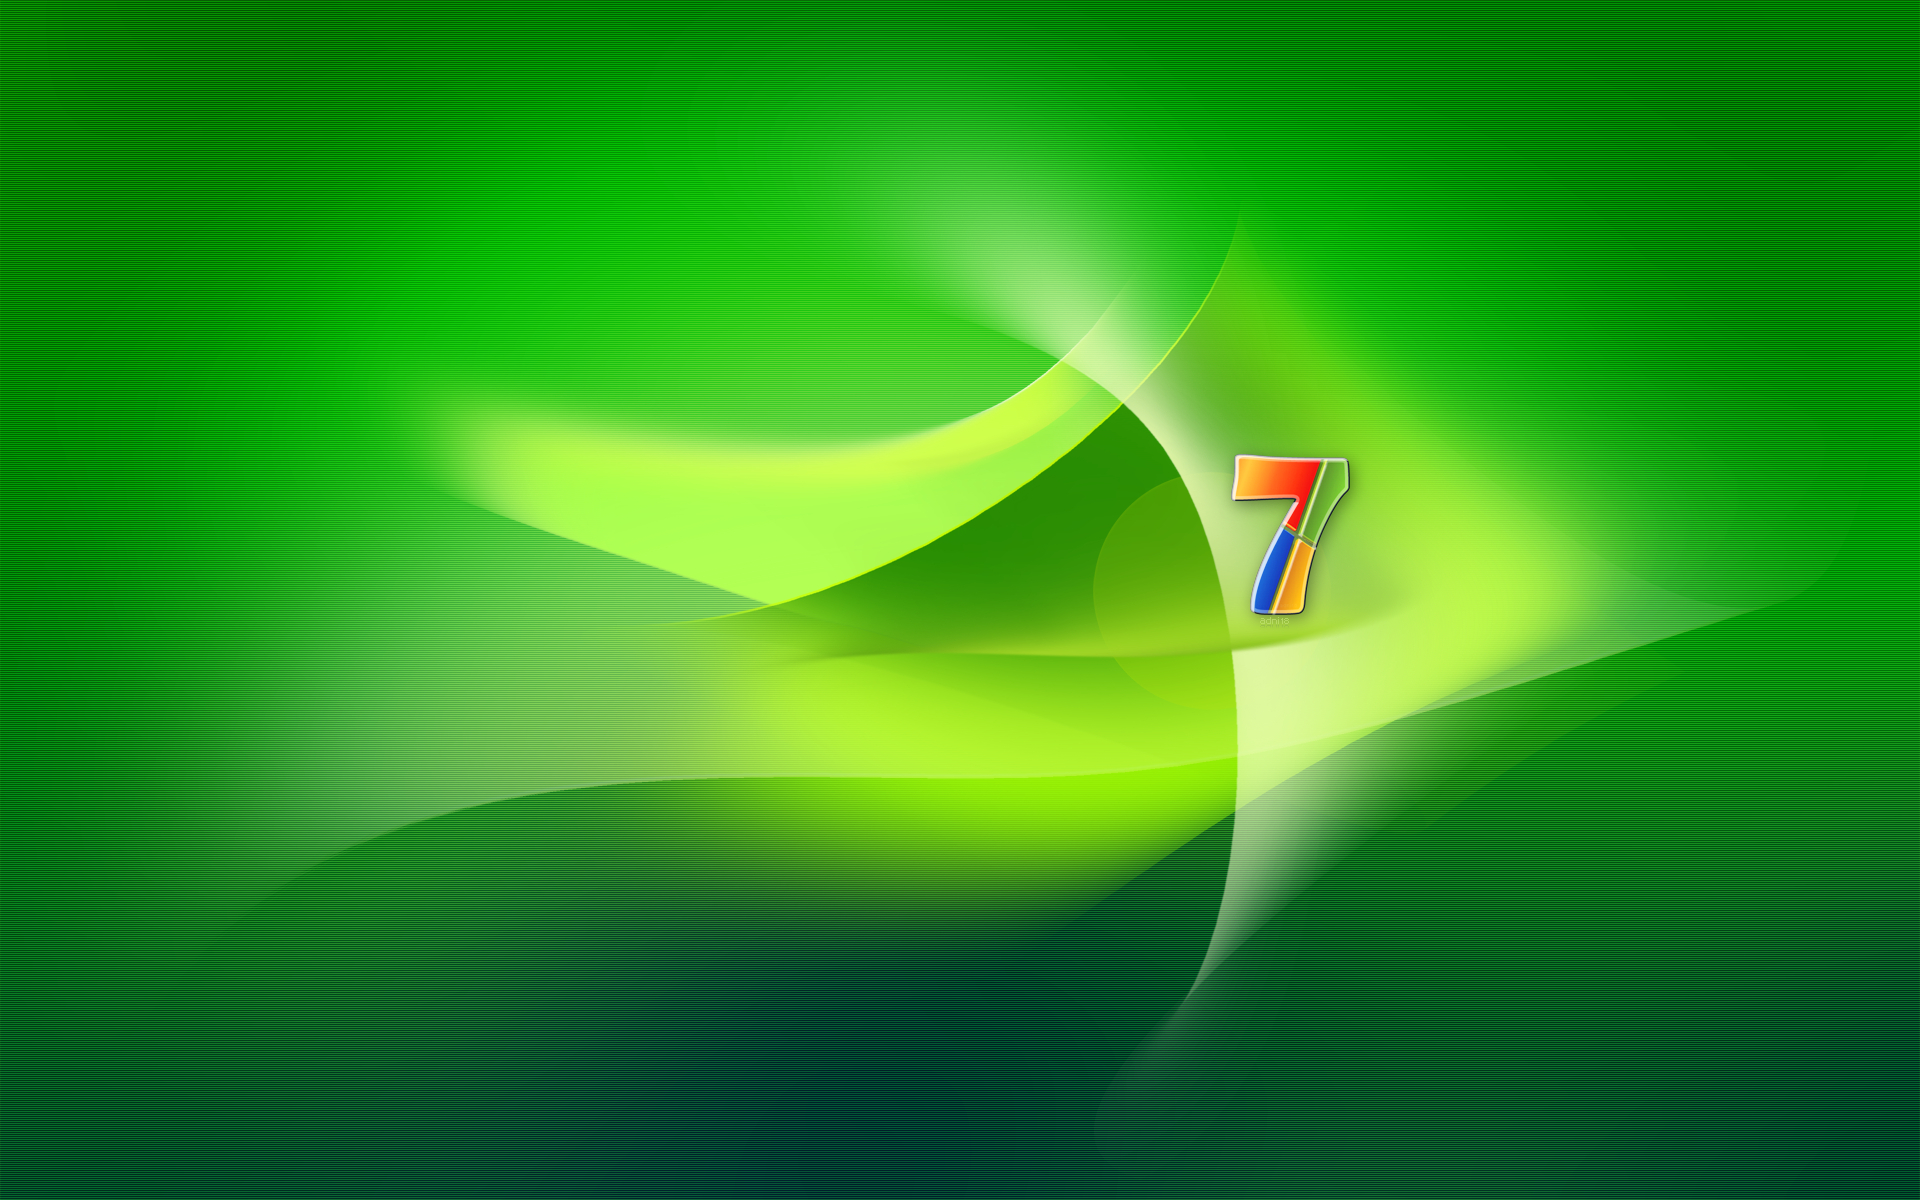 Windows 7 Seven Green by adni18